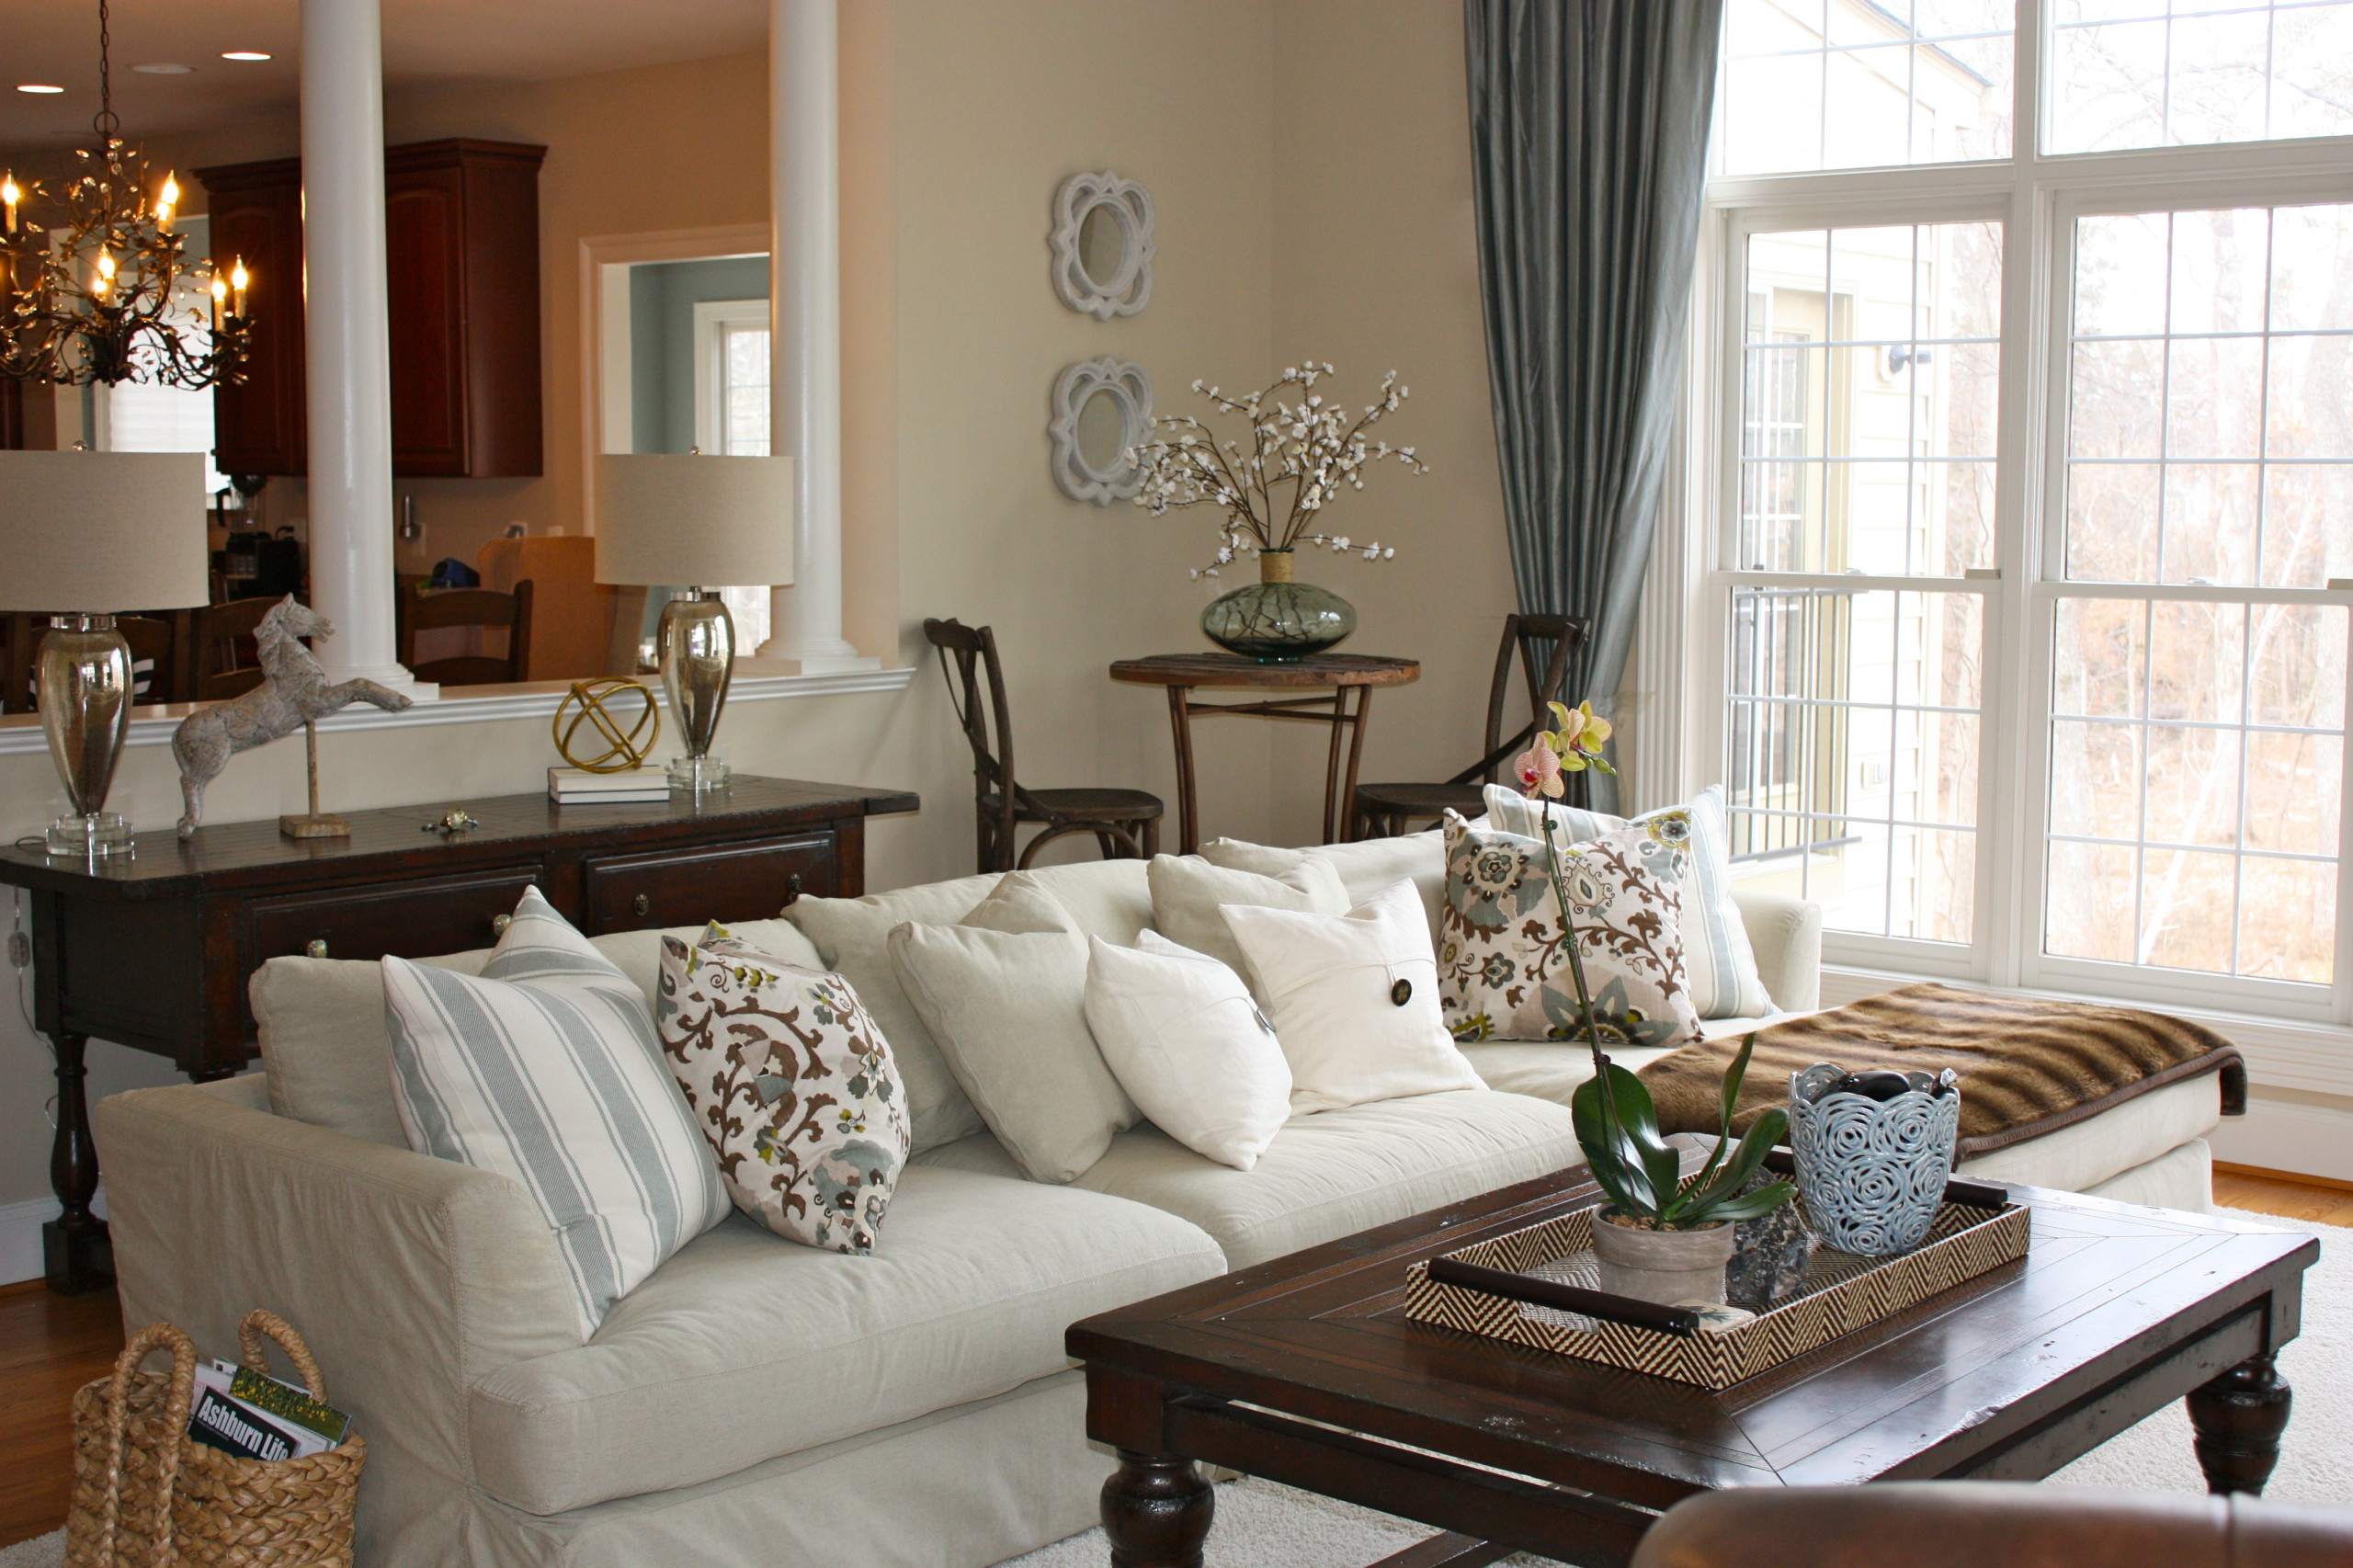 Adding Color and Texture to Liven Up the Family Room